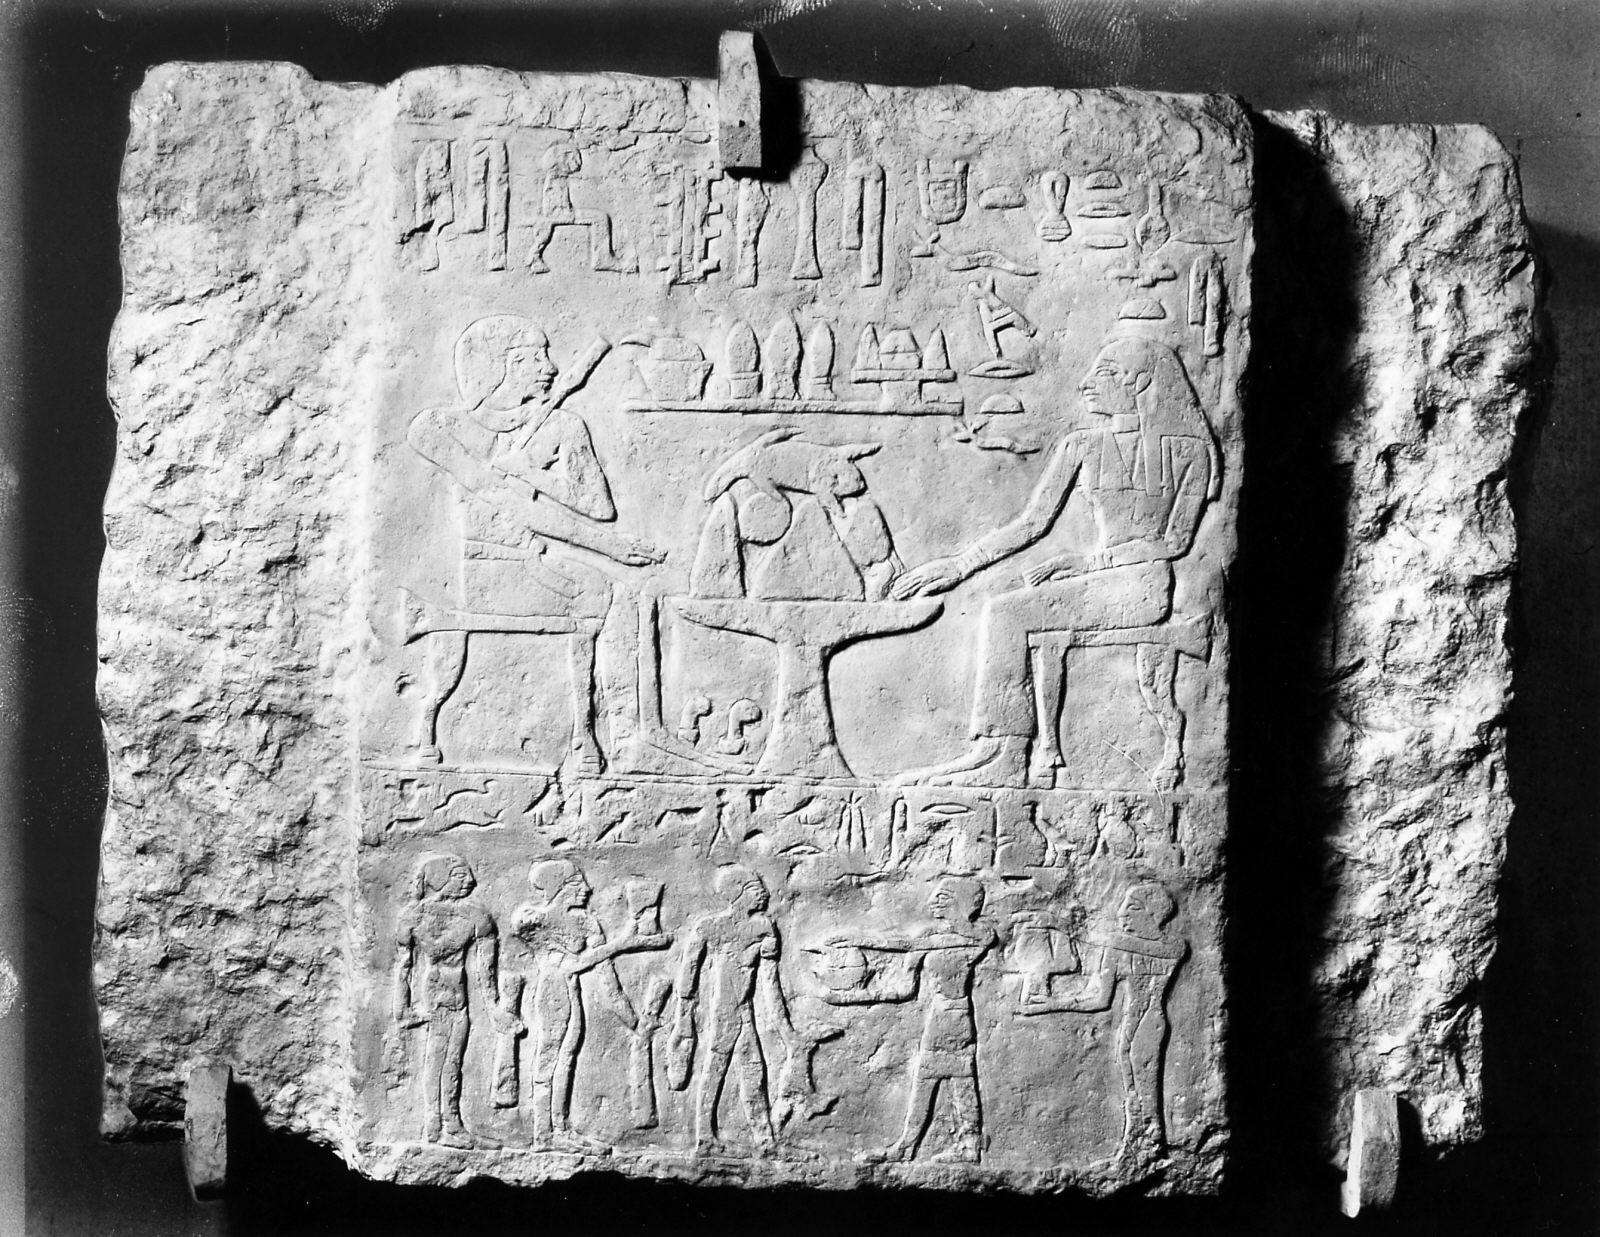 False door tablet inscribed for Shepsi from mastaba of Shepsi, northern false door (Shepsi and his wife Neferwates seated at offering table, and his children below: Djefaibka, Kaemmerut, Werkaptah, Suk, Hui), currently in Kunsthistorisches Museum, Vienna (ÄS 8519). Photo ID KHM_o_neg_nr_0195, photo and description courtesy of the Giza Archives maintained by Harvard University and the Museum of Fine Arts Boston, online at Digital Giza.